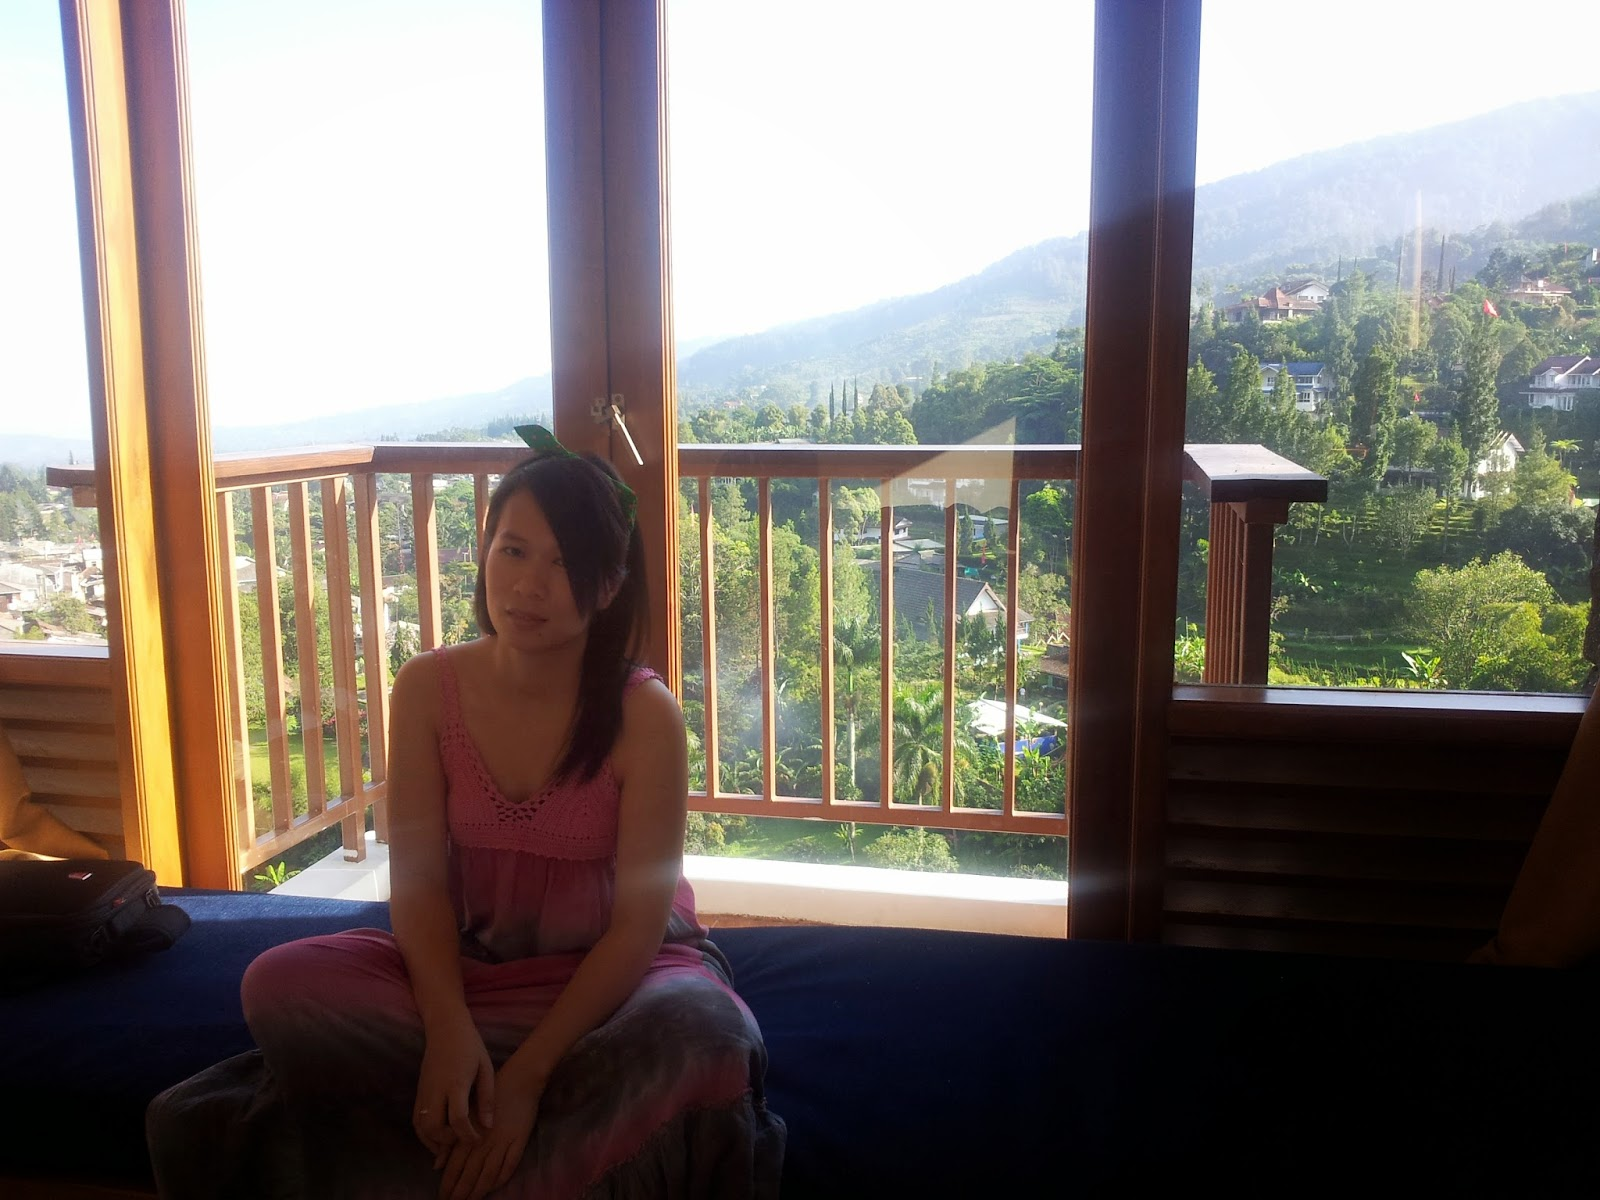 Puncak Escape  The GrandHill BistroCaf  ResortHotel  GlowliciousMe  A Beauty Travel and